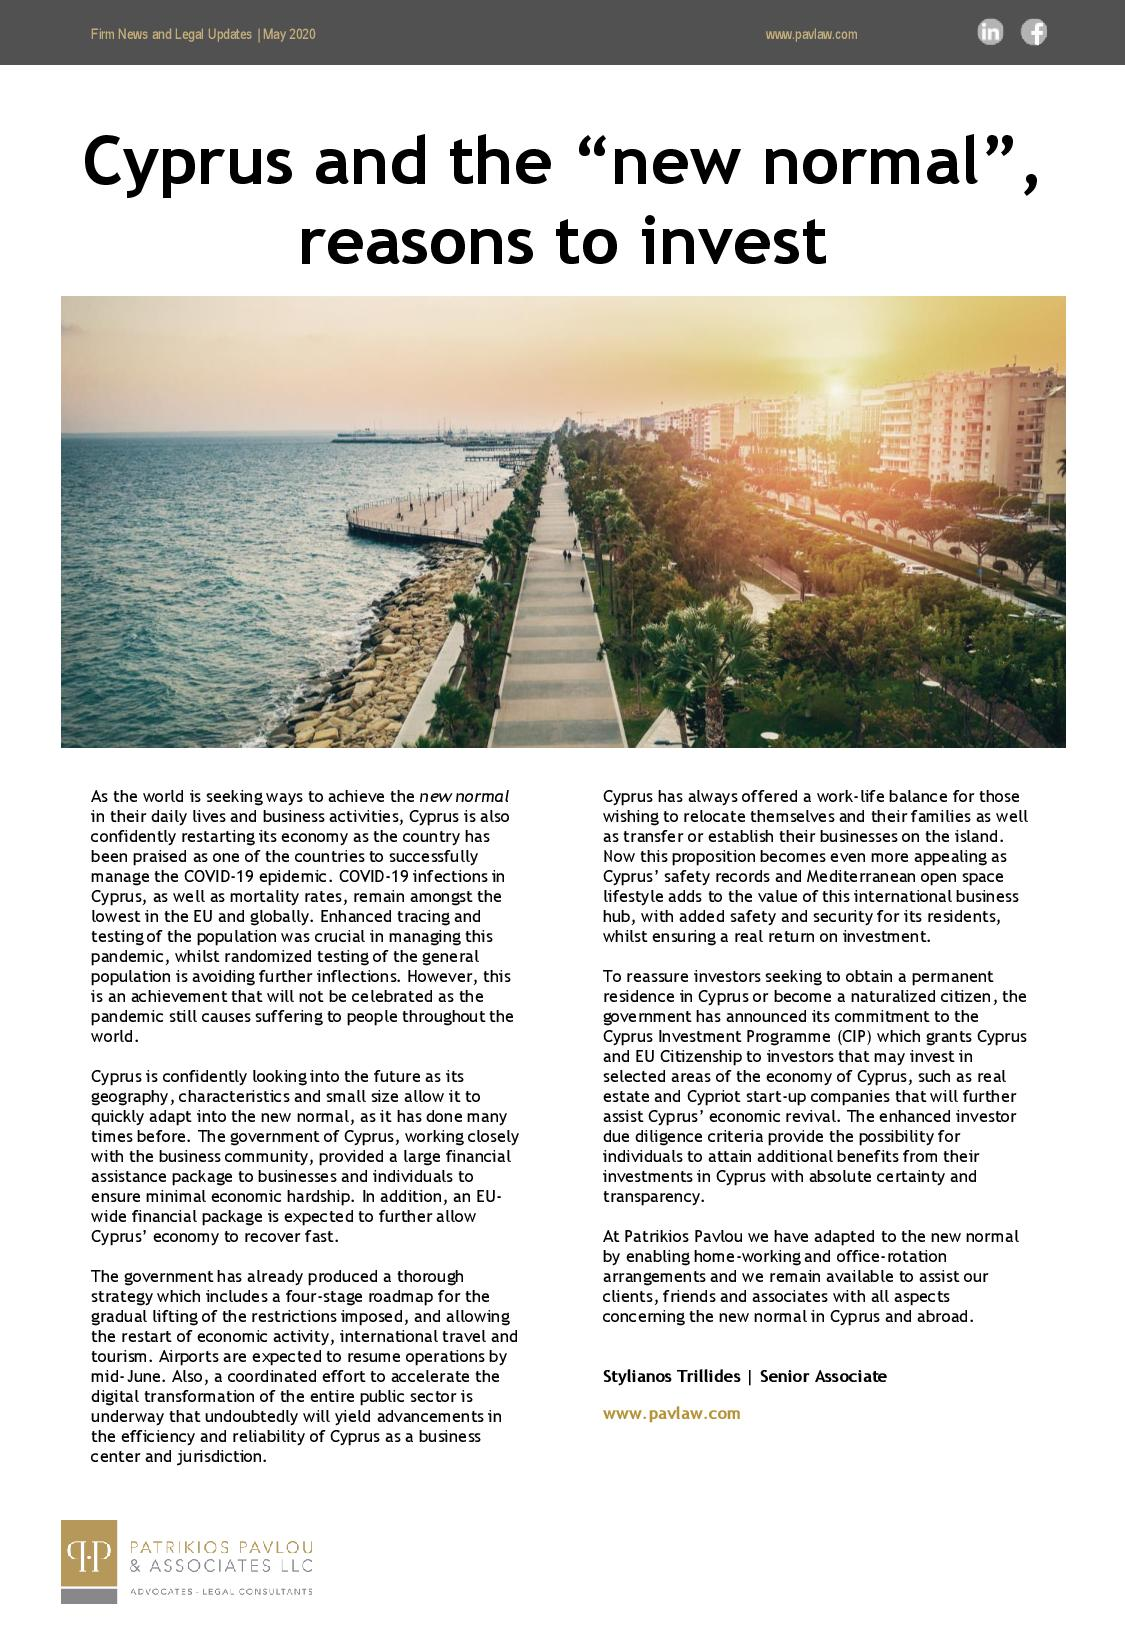 """Patrikios Pavlou & Associates LLC: Cyprus and the """"new normal"""", reasons to invest"""